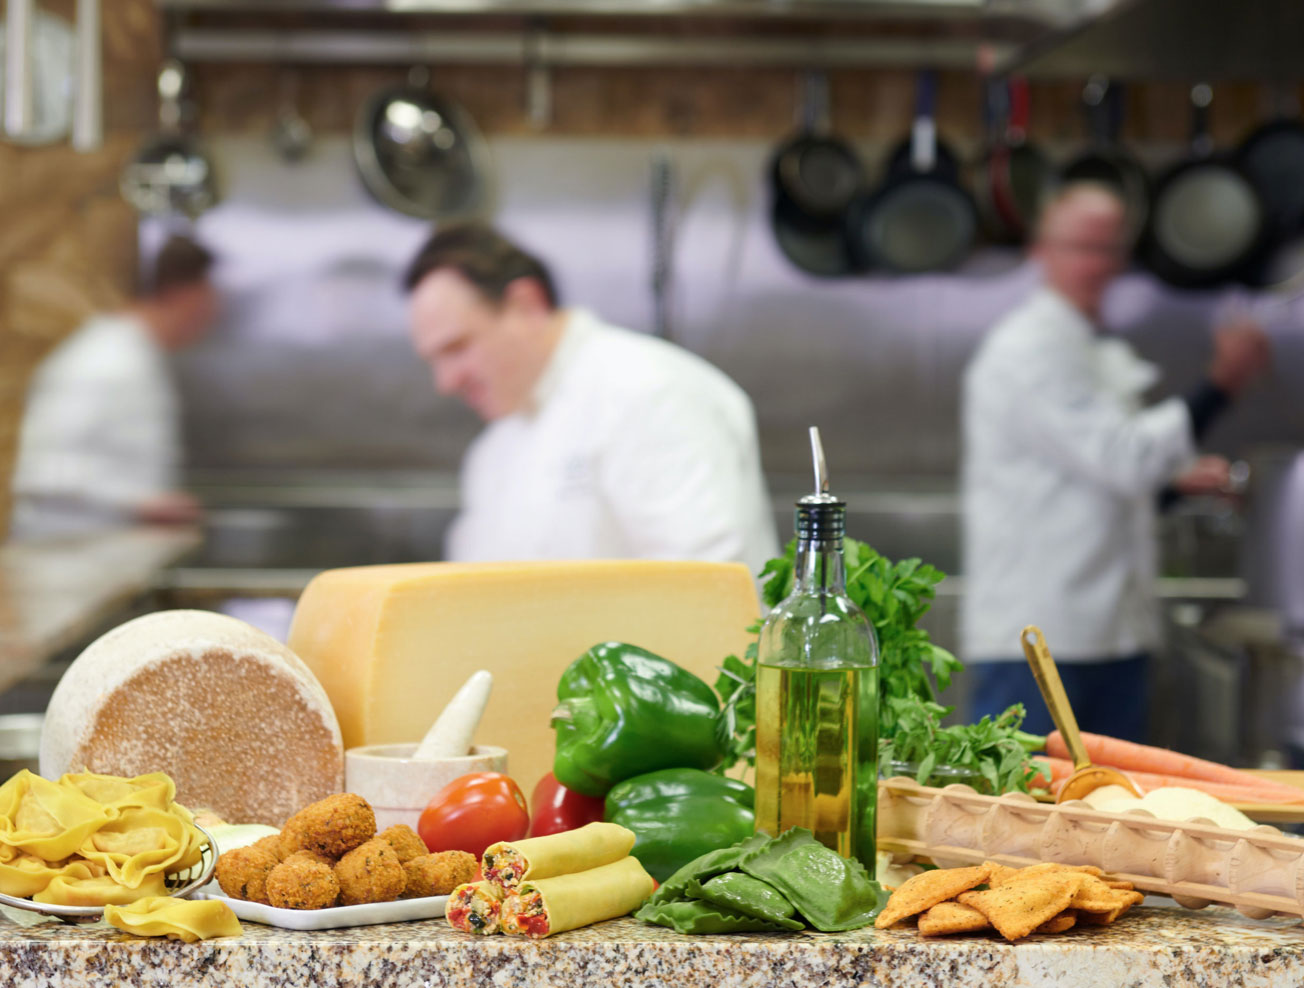 Ingredients displayed on a table with chefs cooking in the background